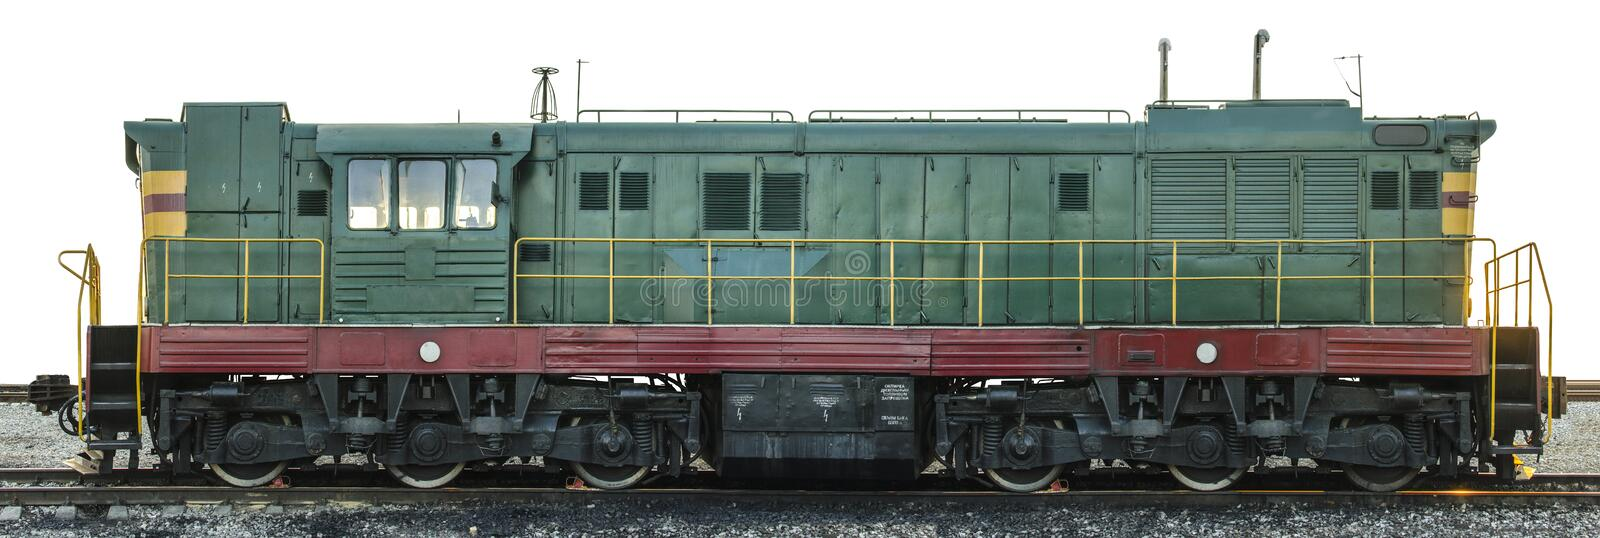 Freight diesel locomotive royalty free stock image